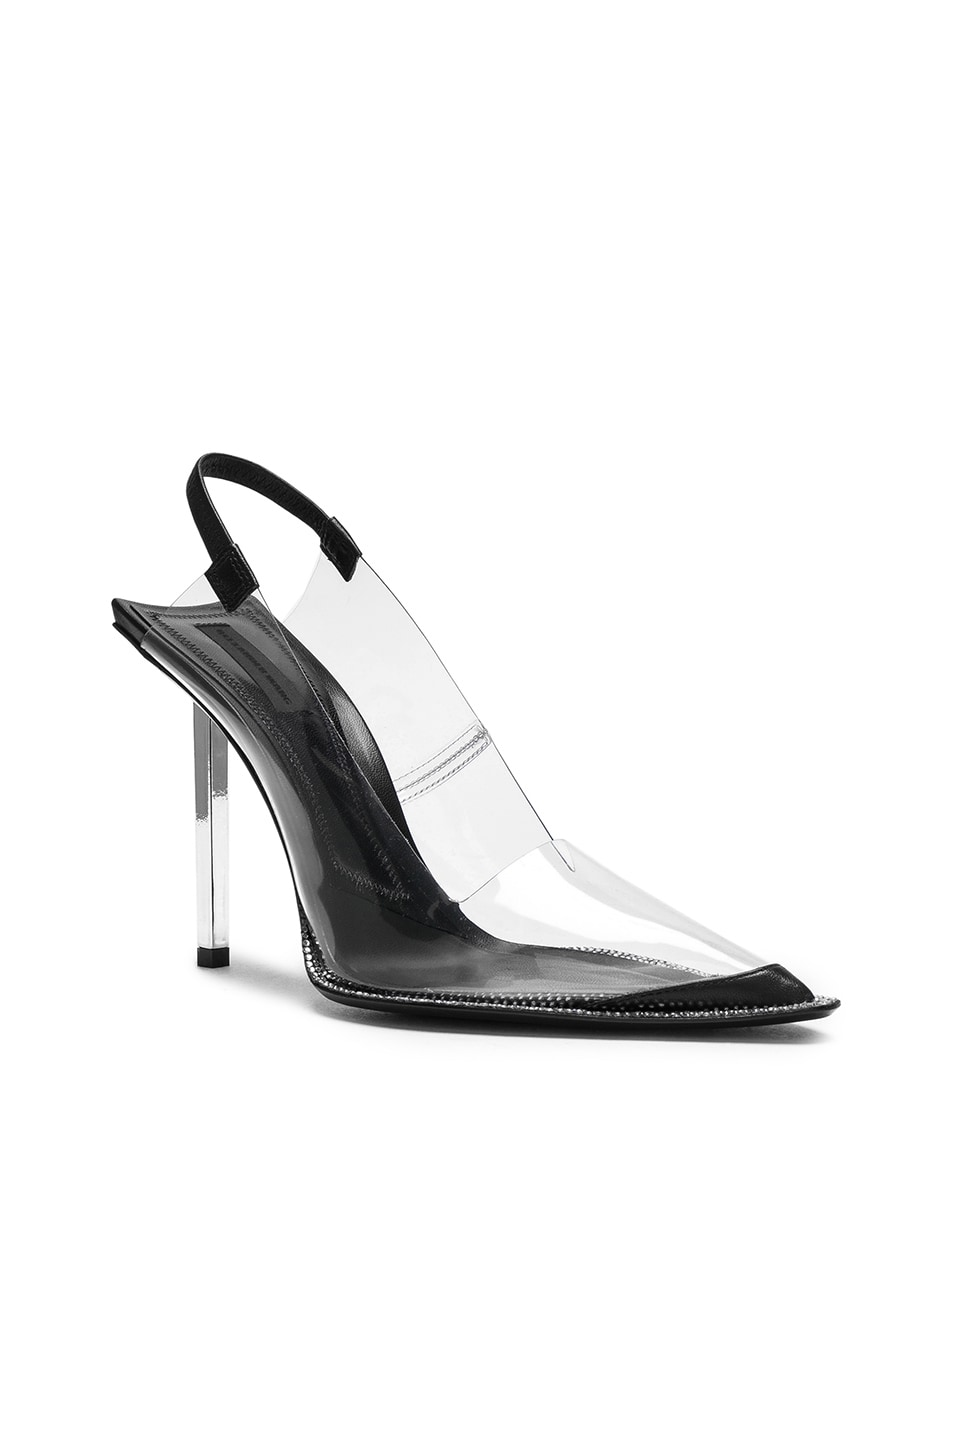 Image 2 of Alexander Wang Marlow Heel in Black